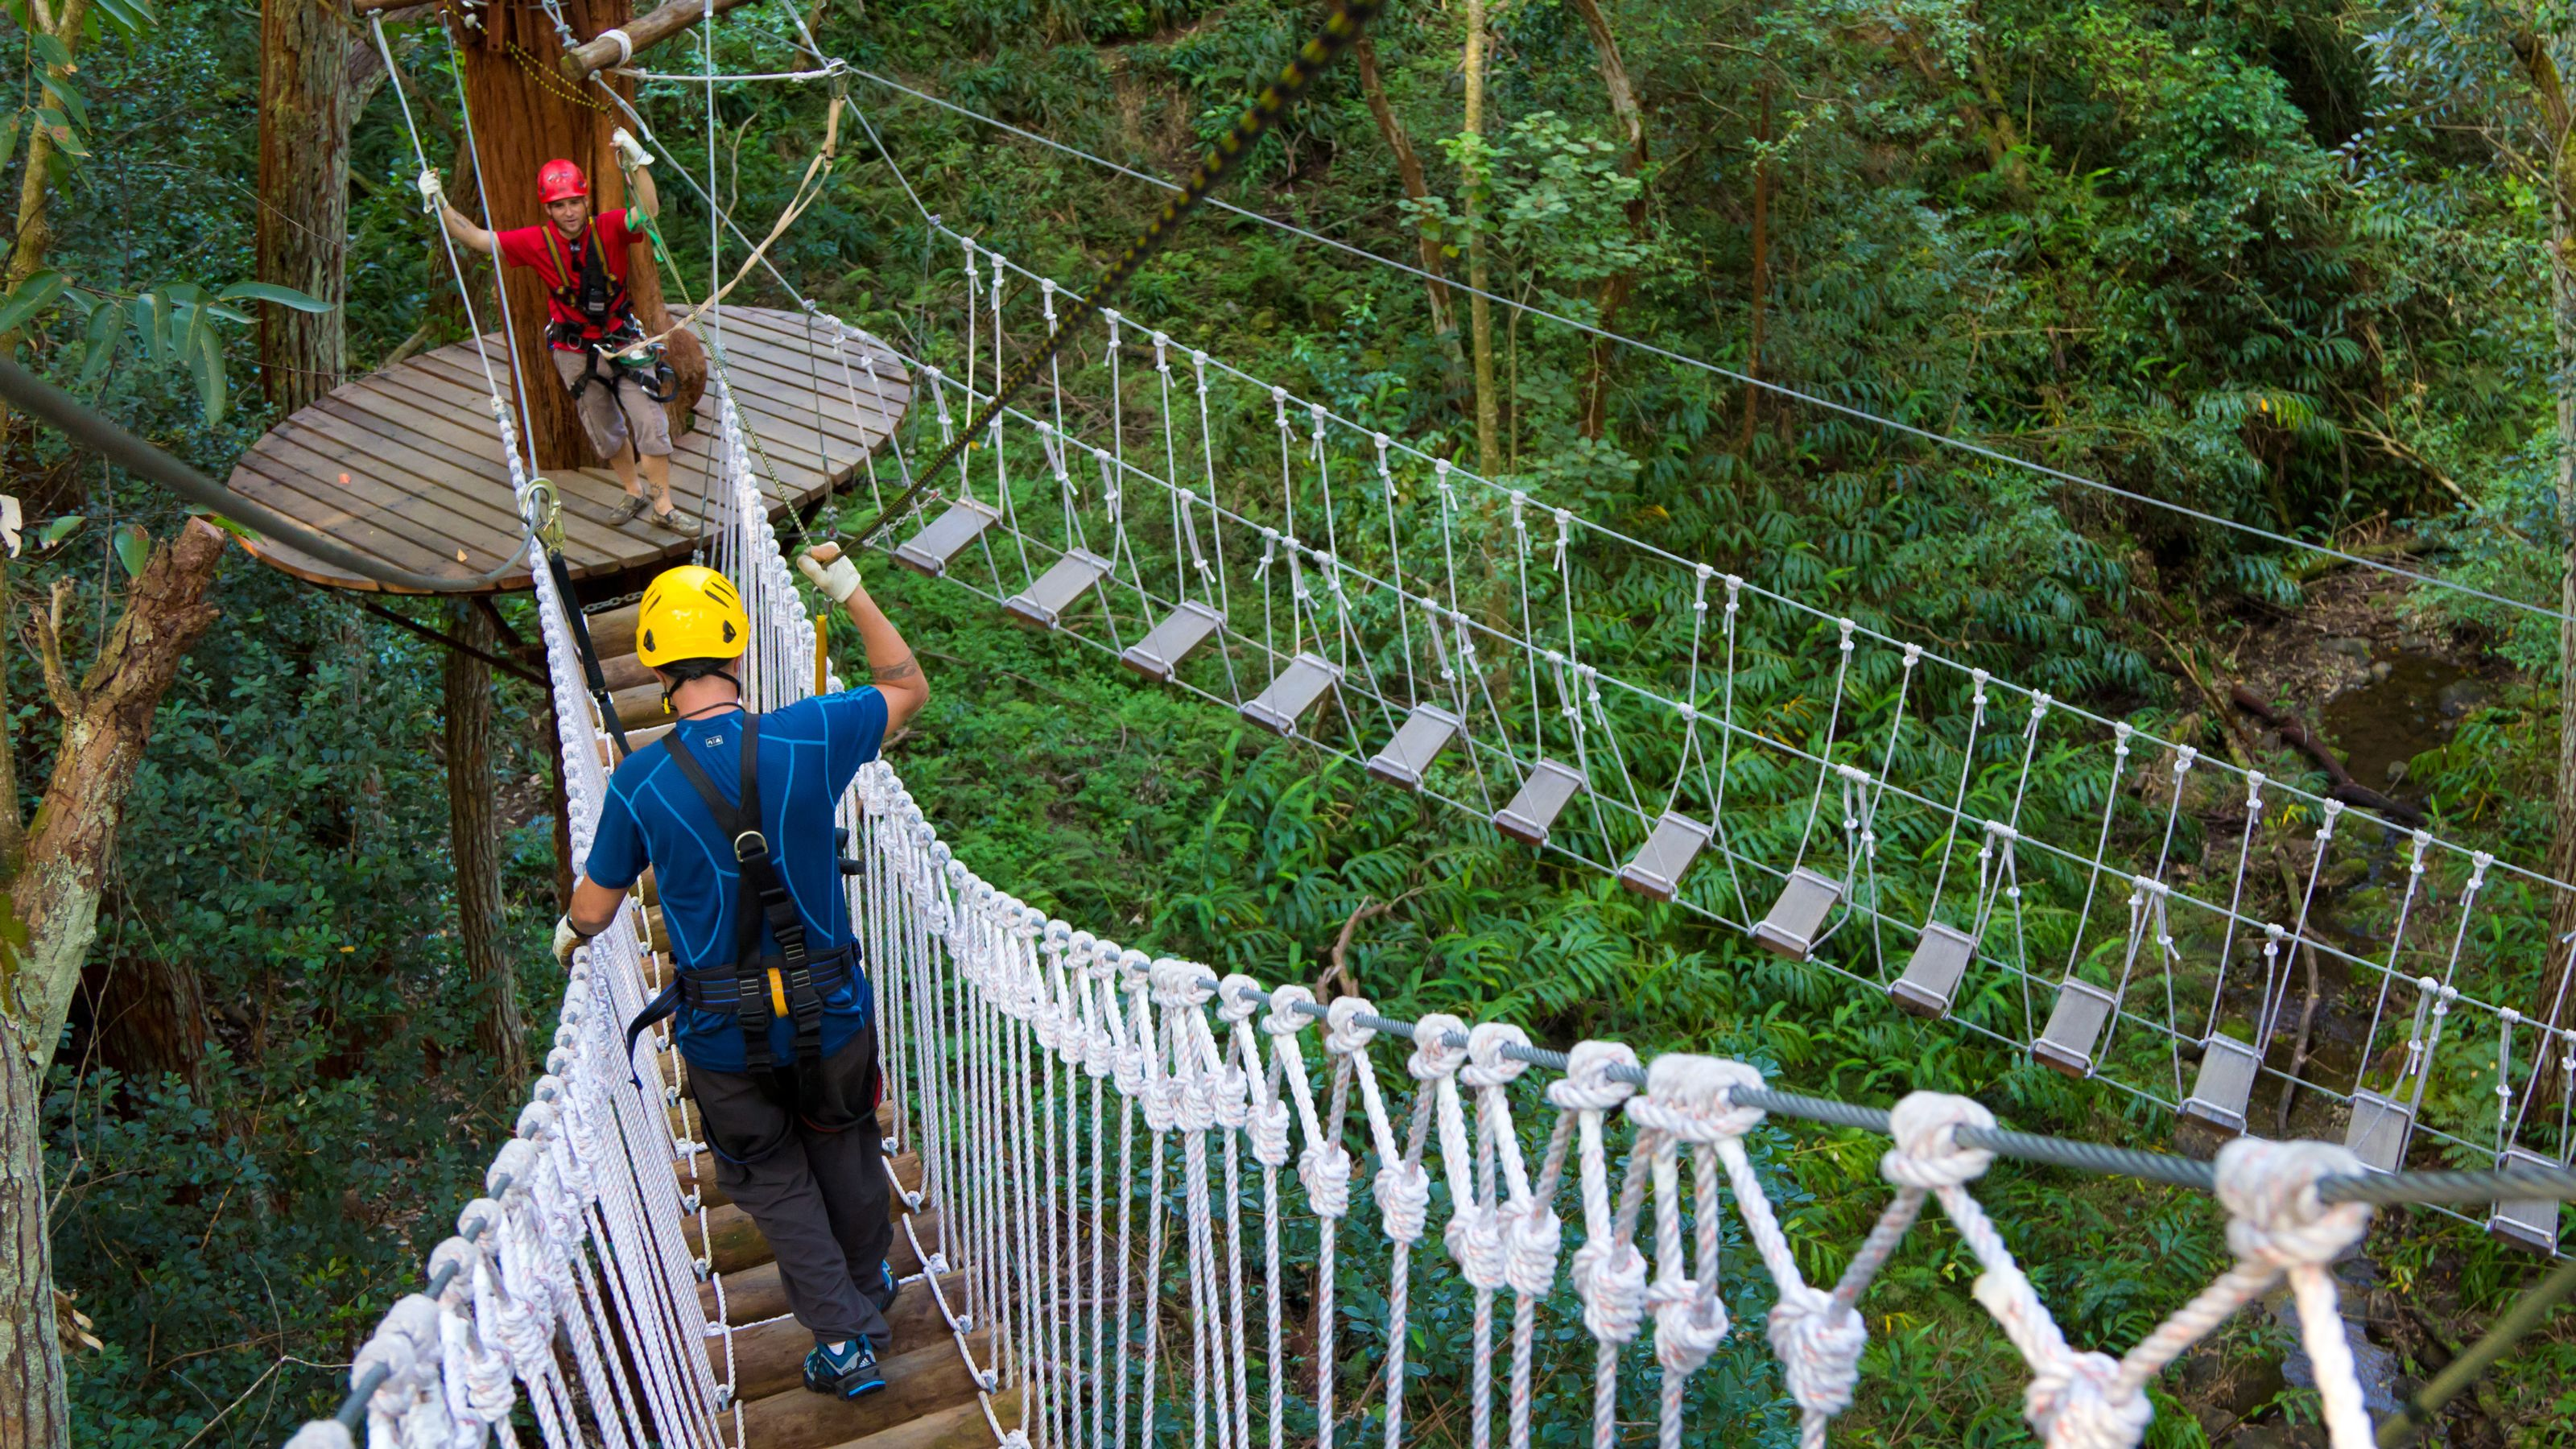 Two people walking across a bridge suspended above the trees in Hawaii